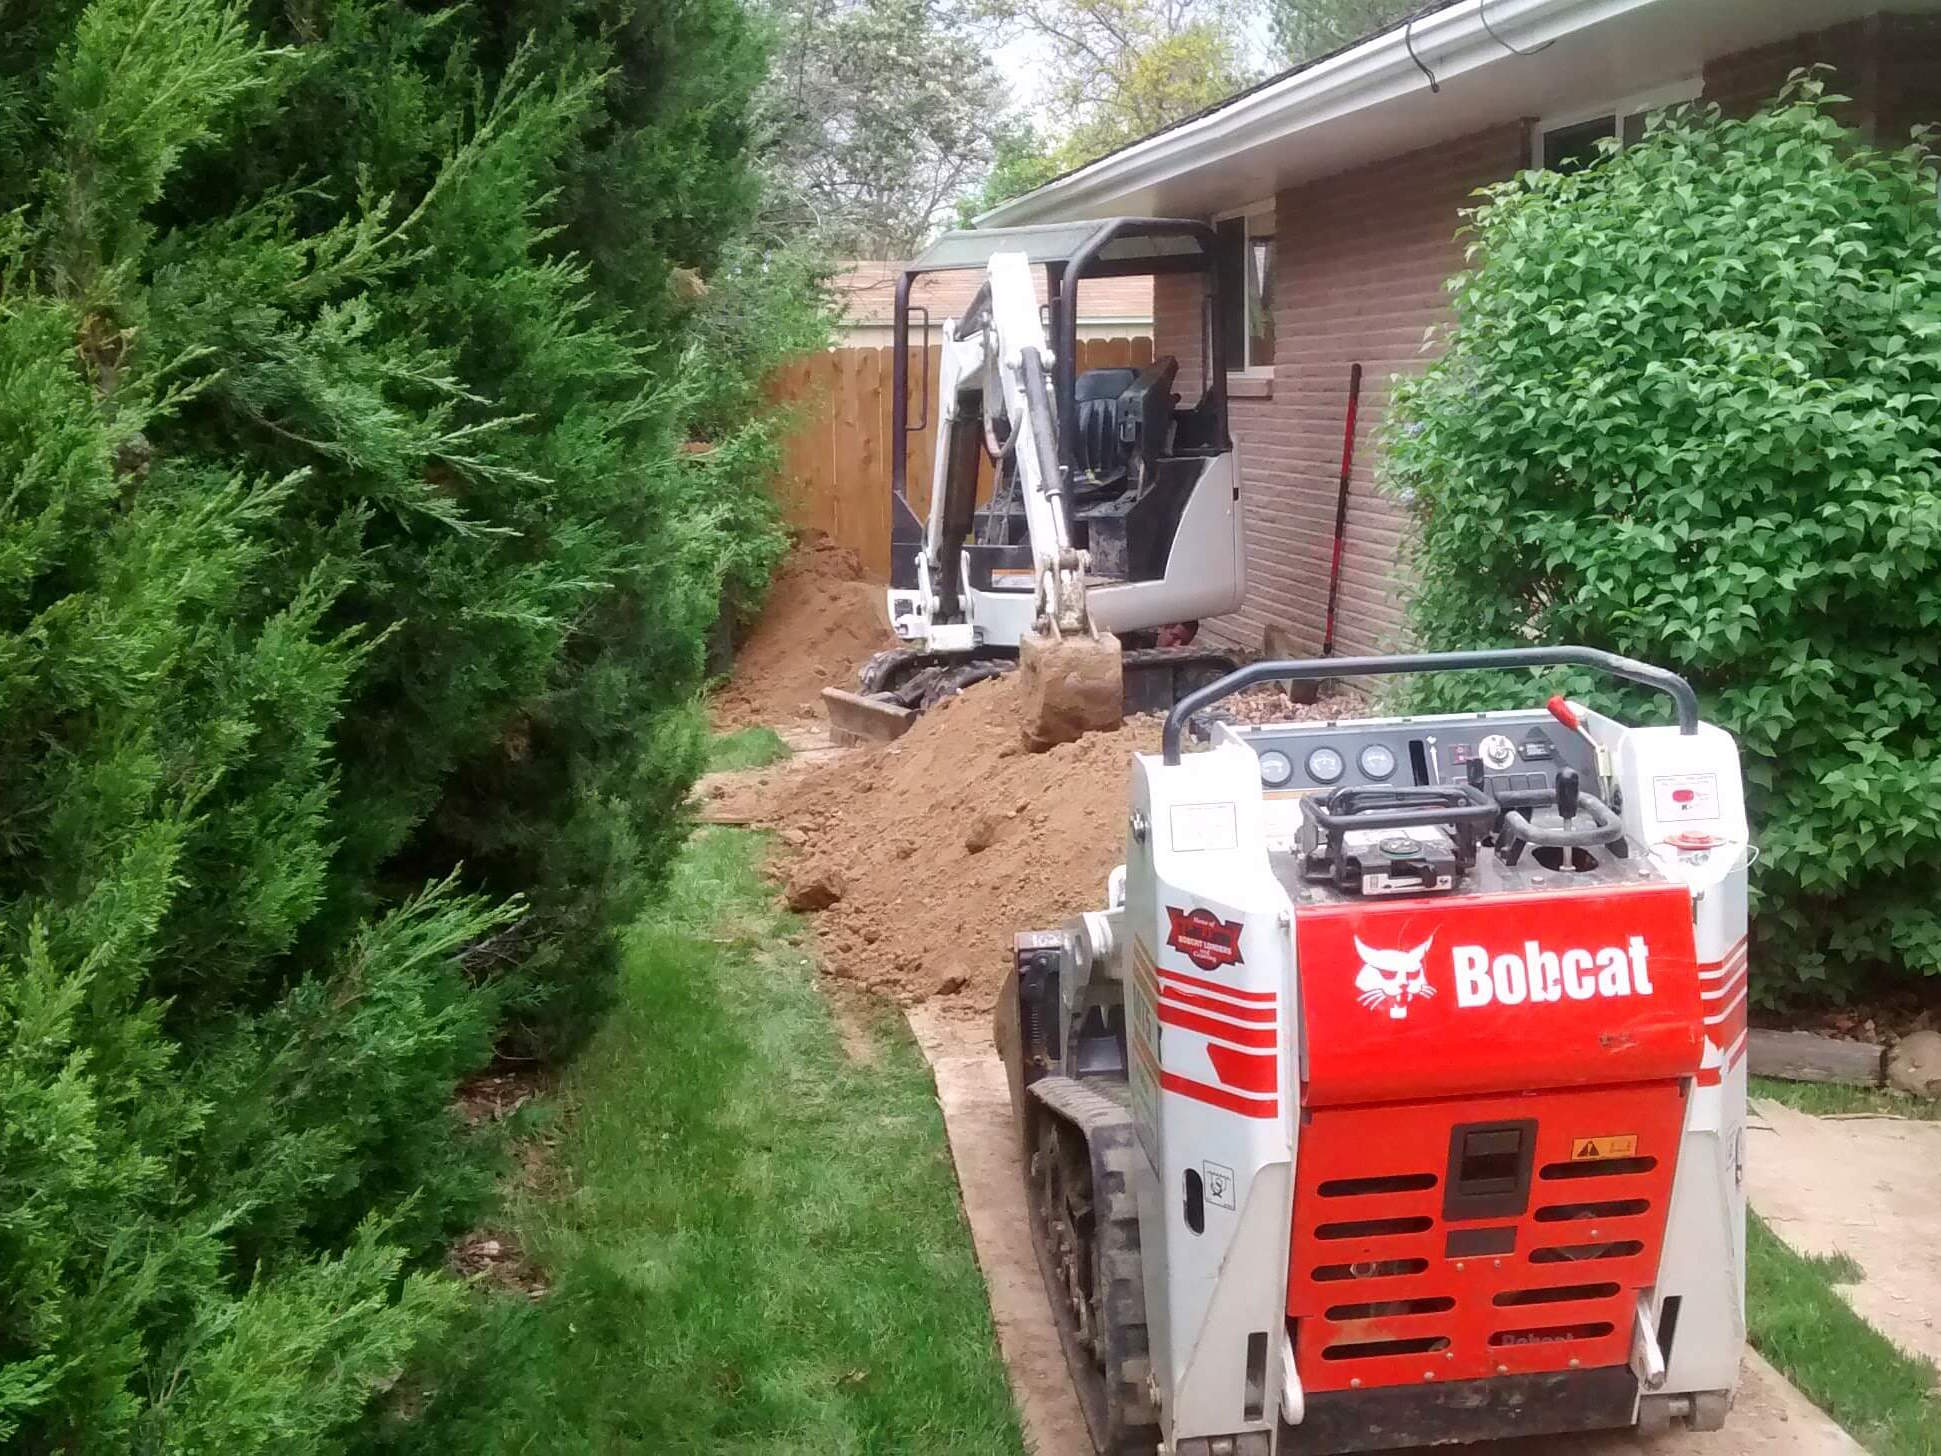 Modern Techniques - Unlike other companies, we never use outdated installation and excavation methods like hand-digging to install your window wells or basement egress windows. Outdated methods are less accurate,more costly, take longer to complete, and will ultimately result in an installation that requires more maintenance for the homeowner. At Basement Escape, we are constantly improving our installation methods so that we can deliver the best possible service to our customers.